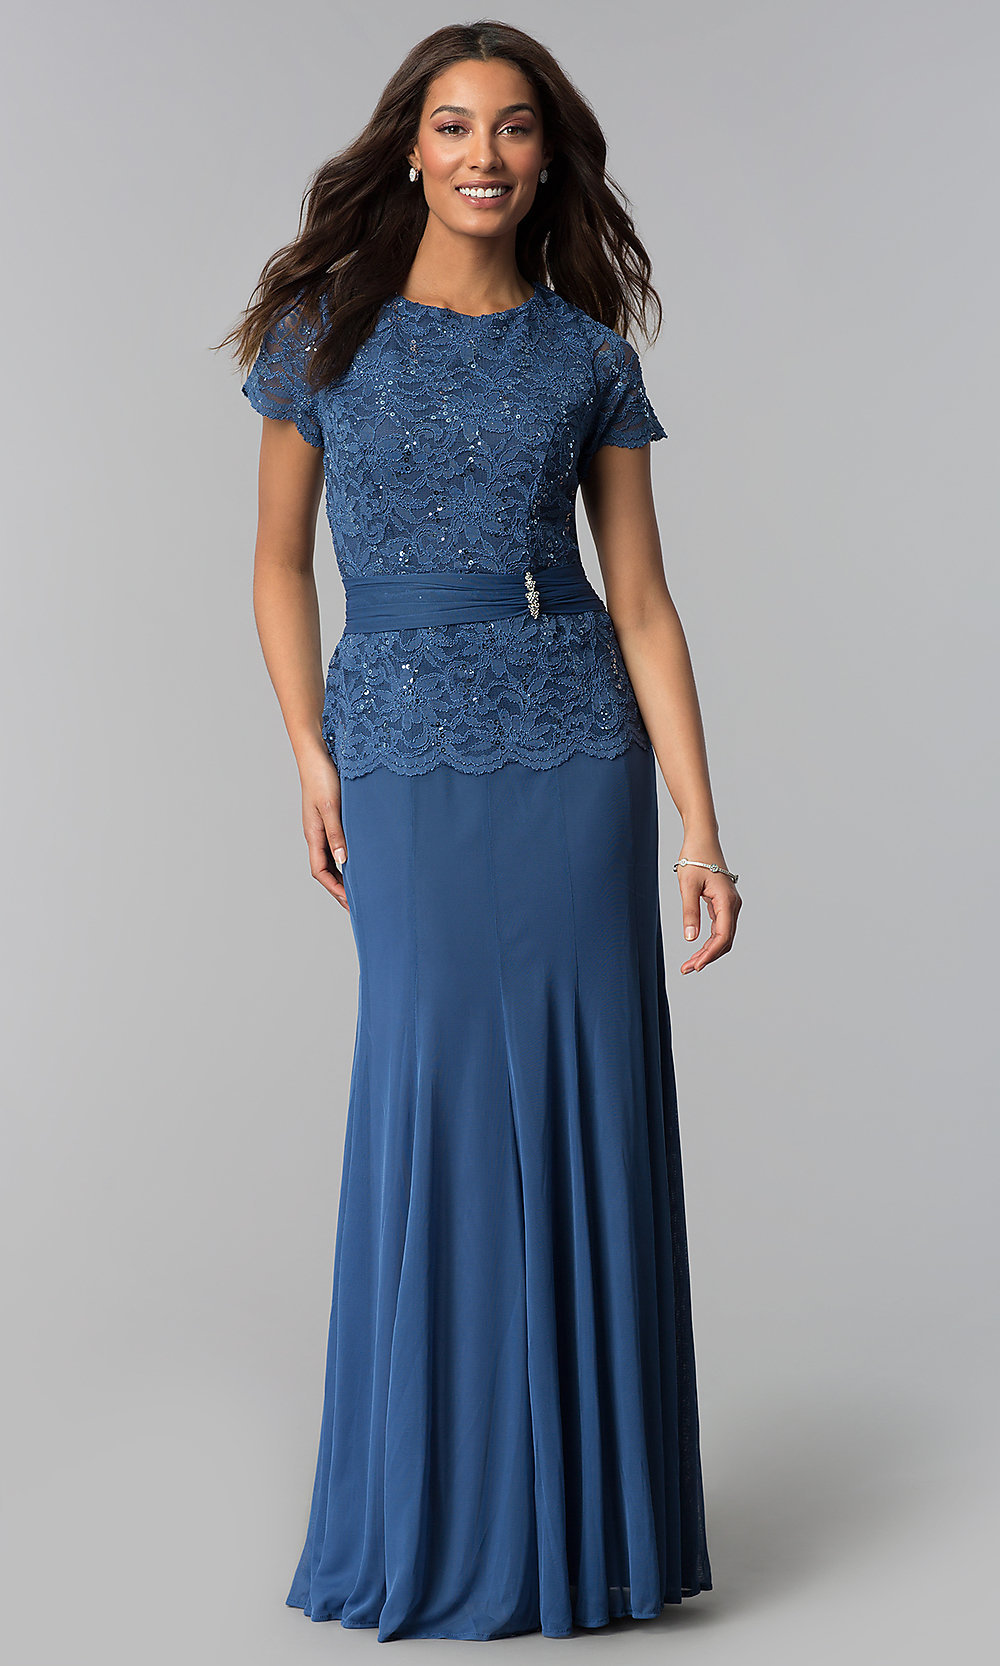 Periwinkle Blue Mother-of-the-Bride Dress - PromGirl